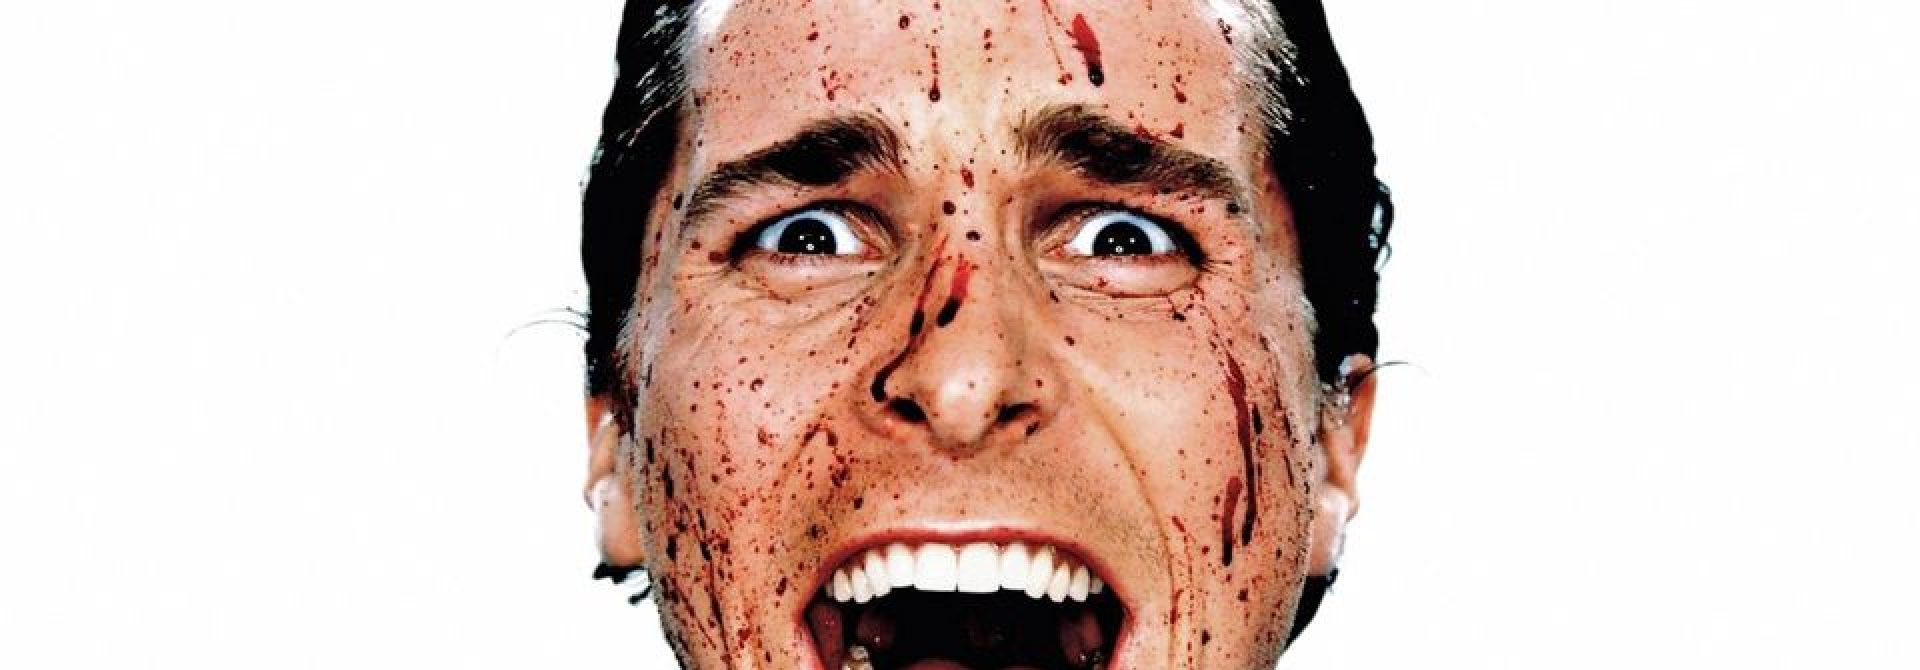 American Psycho tv series in the works